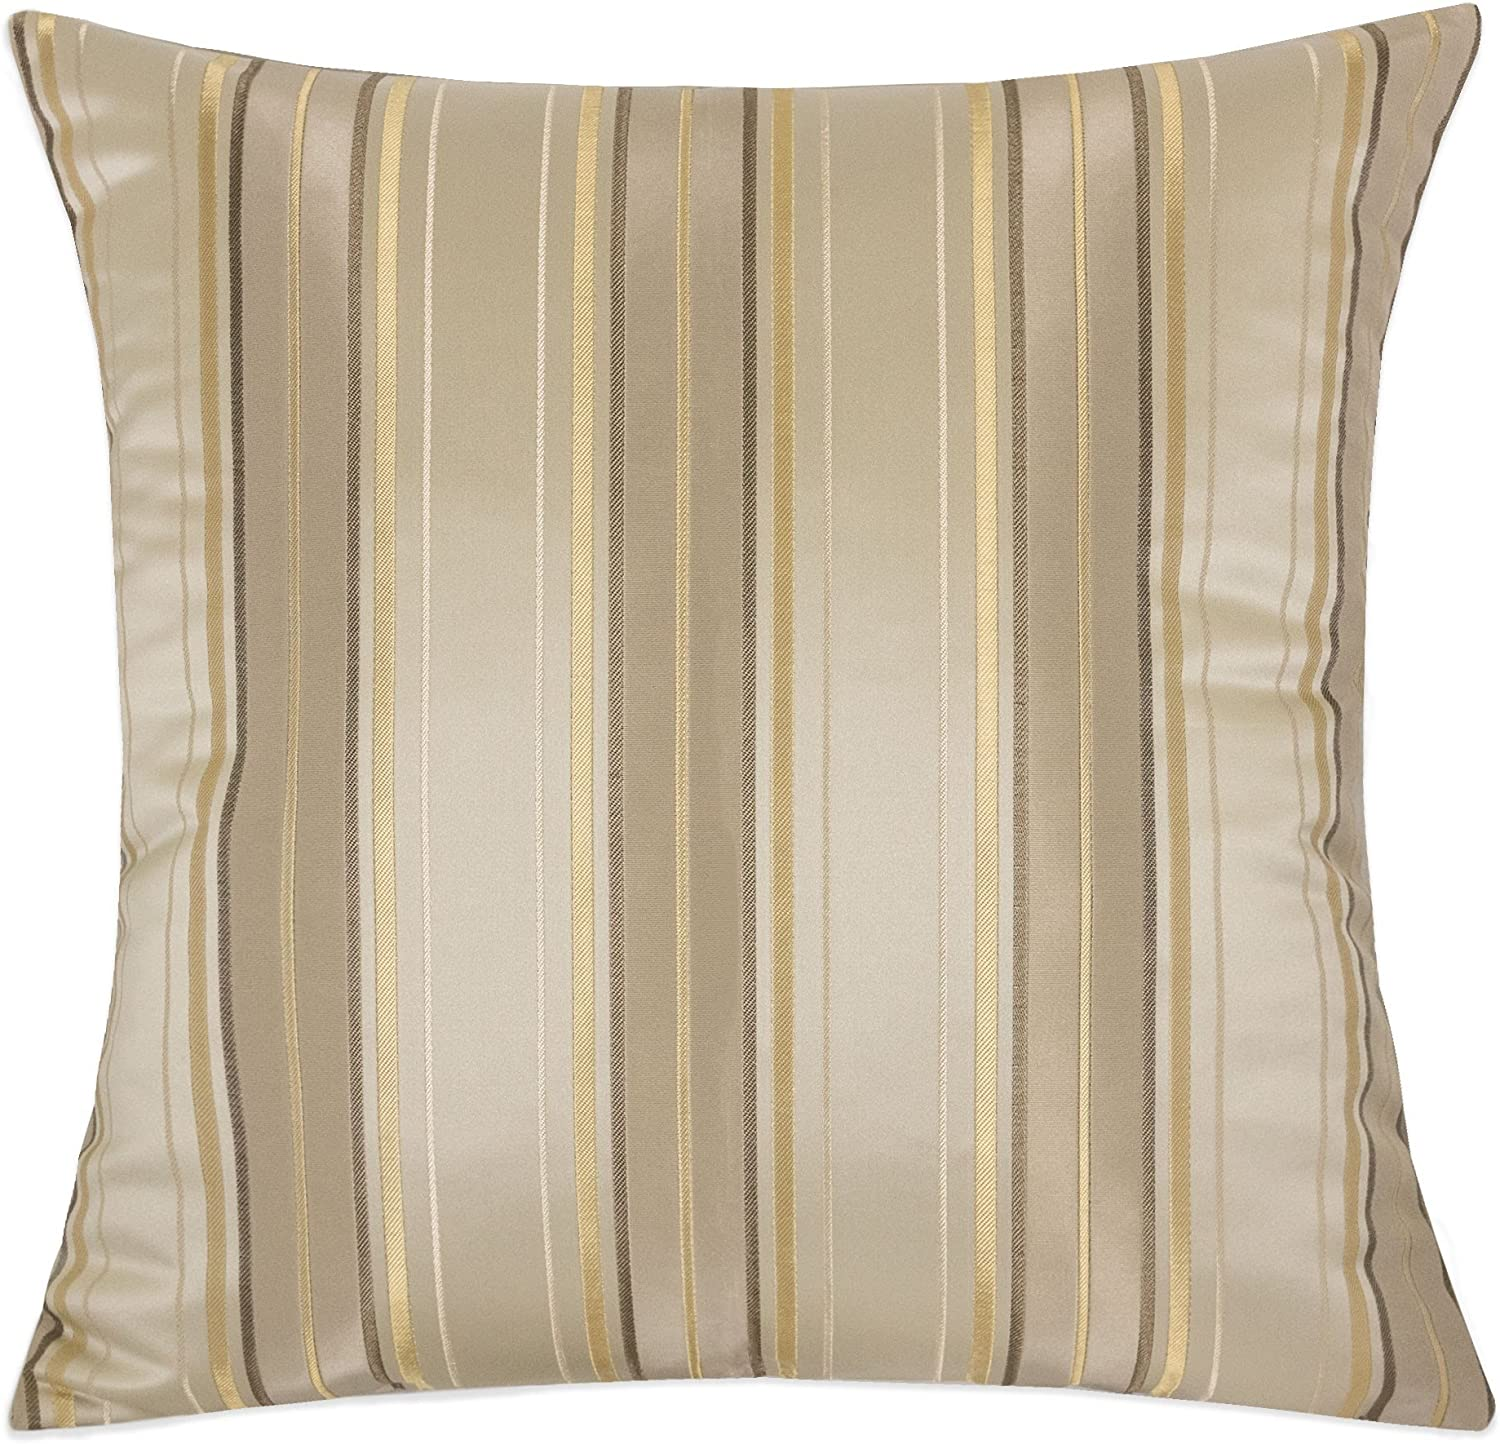 Amazon Com Homey Cozy Satin Throw Pillow Cover Silk Maze Series Gold Striped Large Sofa Couch Cushion Decorative Pillow Case 20 X 20 Inch Cover Only Home Kitchen